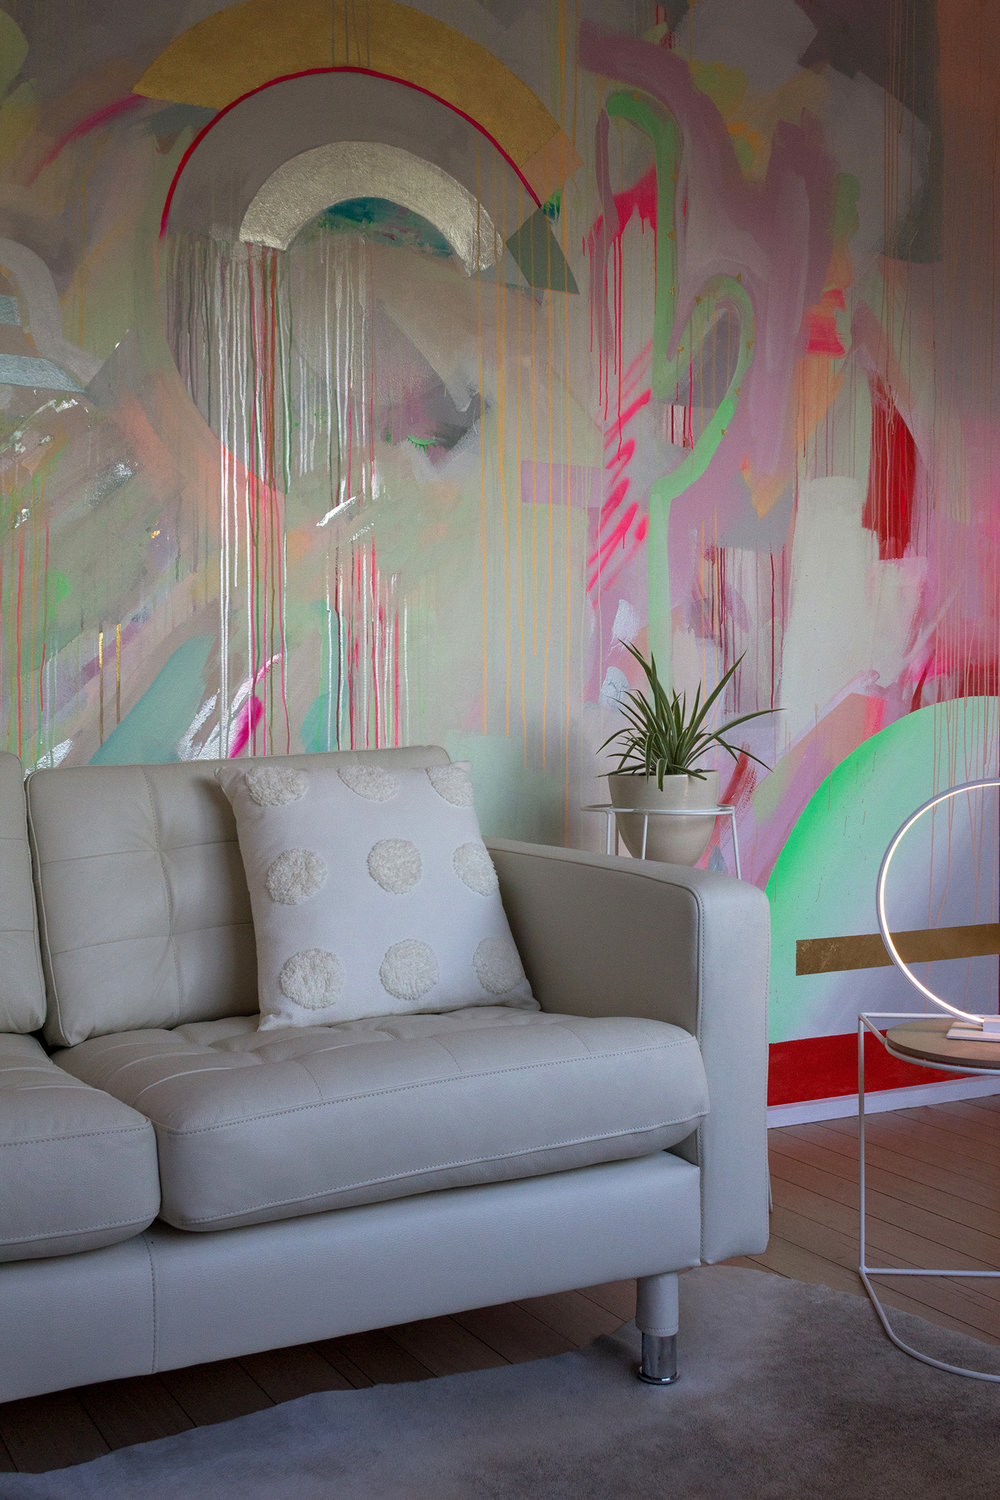 Vibrant galaxy wall mural in bright neon colours, featuring gold leaf shapes, metallic rainbow, spray painted cactus and striped cloud. Styled in front is a white leather couch and round LED lamp.